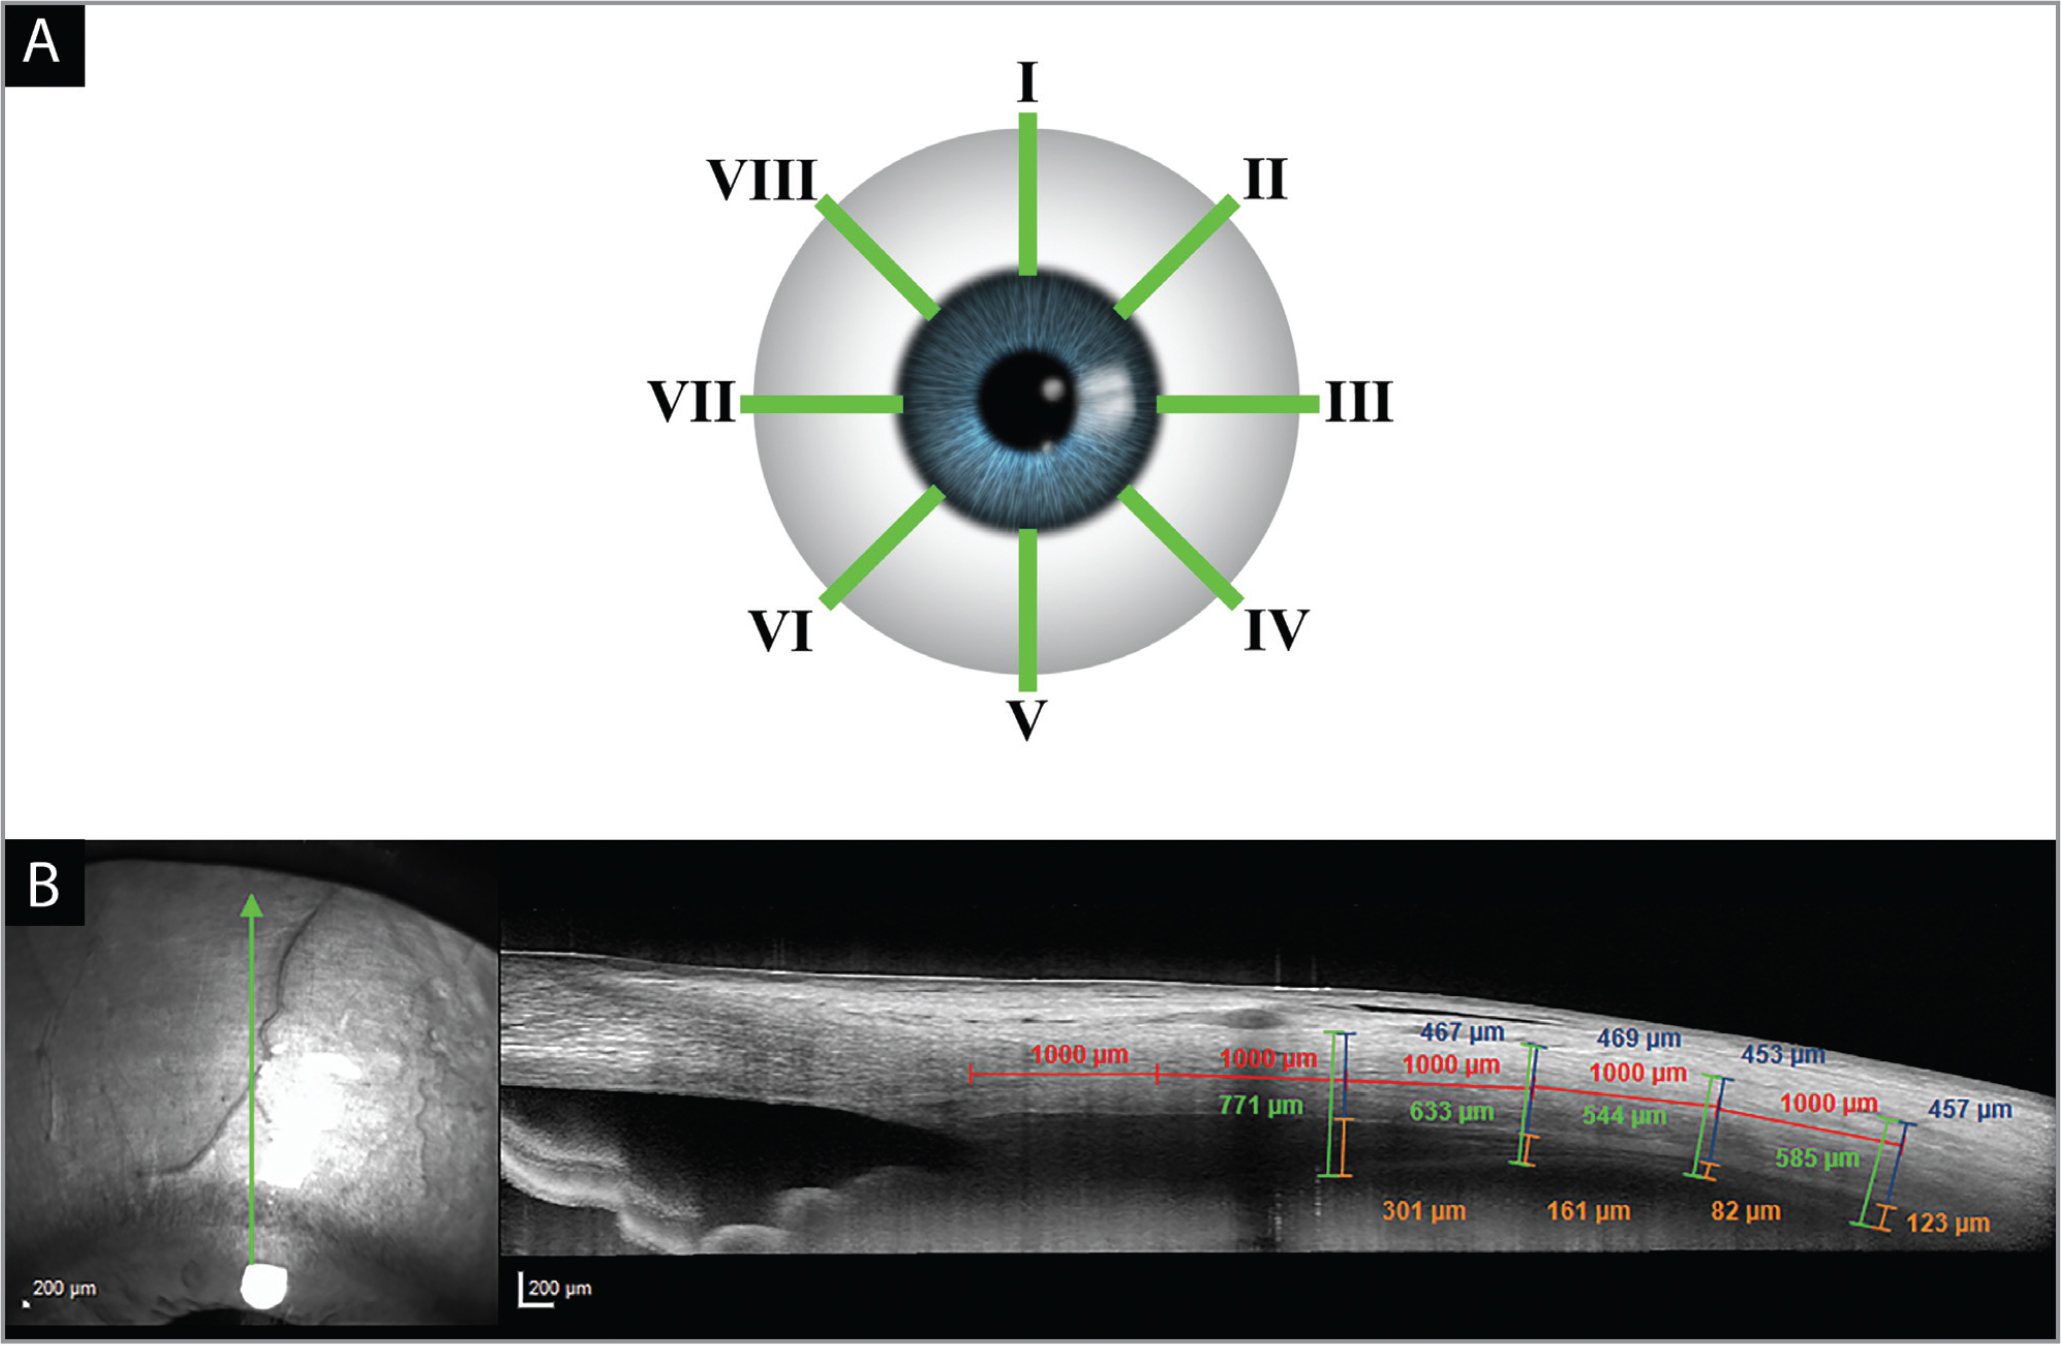 Visual representation of the different anterior-segment spectral-domain optical coherence tomography (AS-OCT) scan quadrants labelled in green (A). Starting from the 12-o'clock position on the right eye and proceeding clockwise: superior (I), superior-nasal (II), nasal (III), inferior-nasal (IV), inferior (V), inferior-temporal (VI), temporal (VII), and superior-temporal (VIII). Below, a superior AS-OCT scan of a study eye prior to suprachoroidal CLS-TA injection (B). The calipers used to analyze the thicknesses of the choroid (orange), sclera (blue), and choroid plus suprachoroidal space plus sclera (green) are displayed along with 1,000 μm incremental measurements posterior from Schlemm's canal (red).